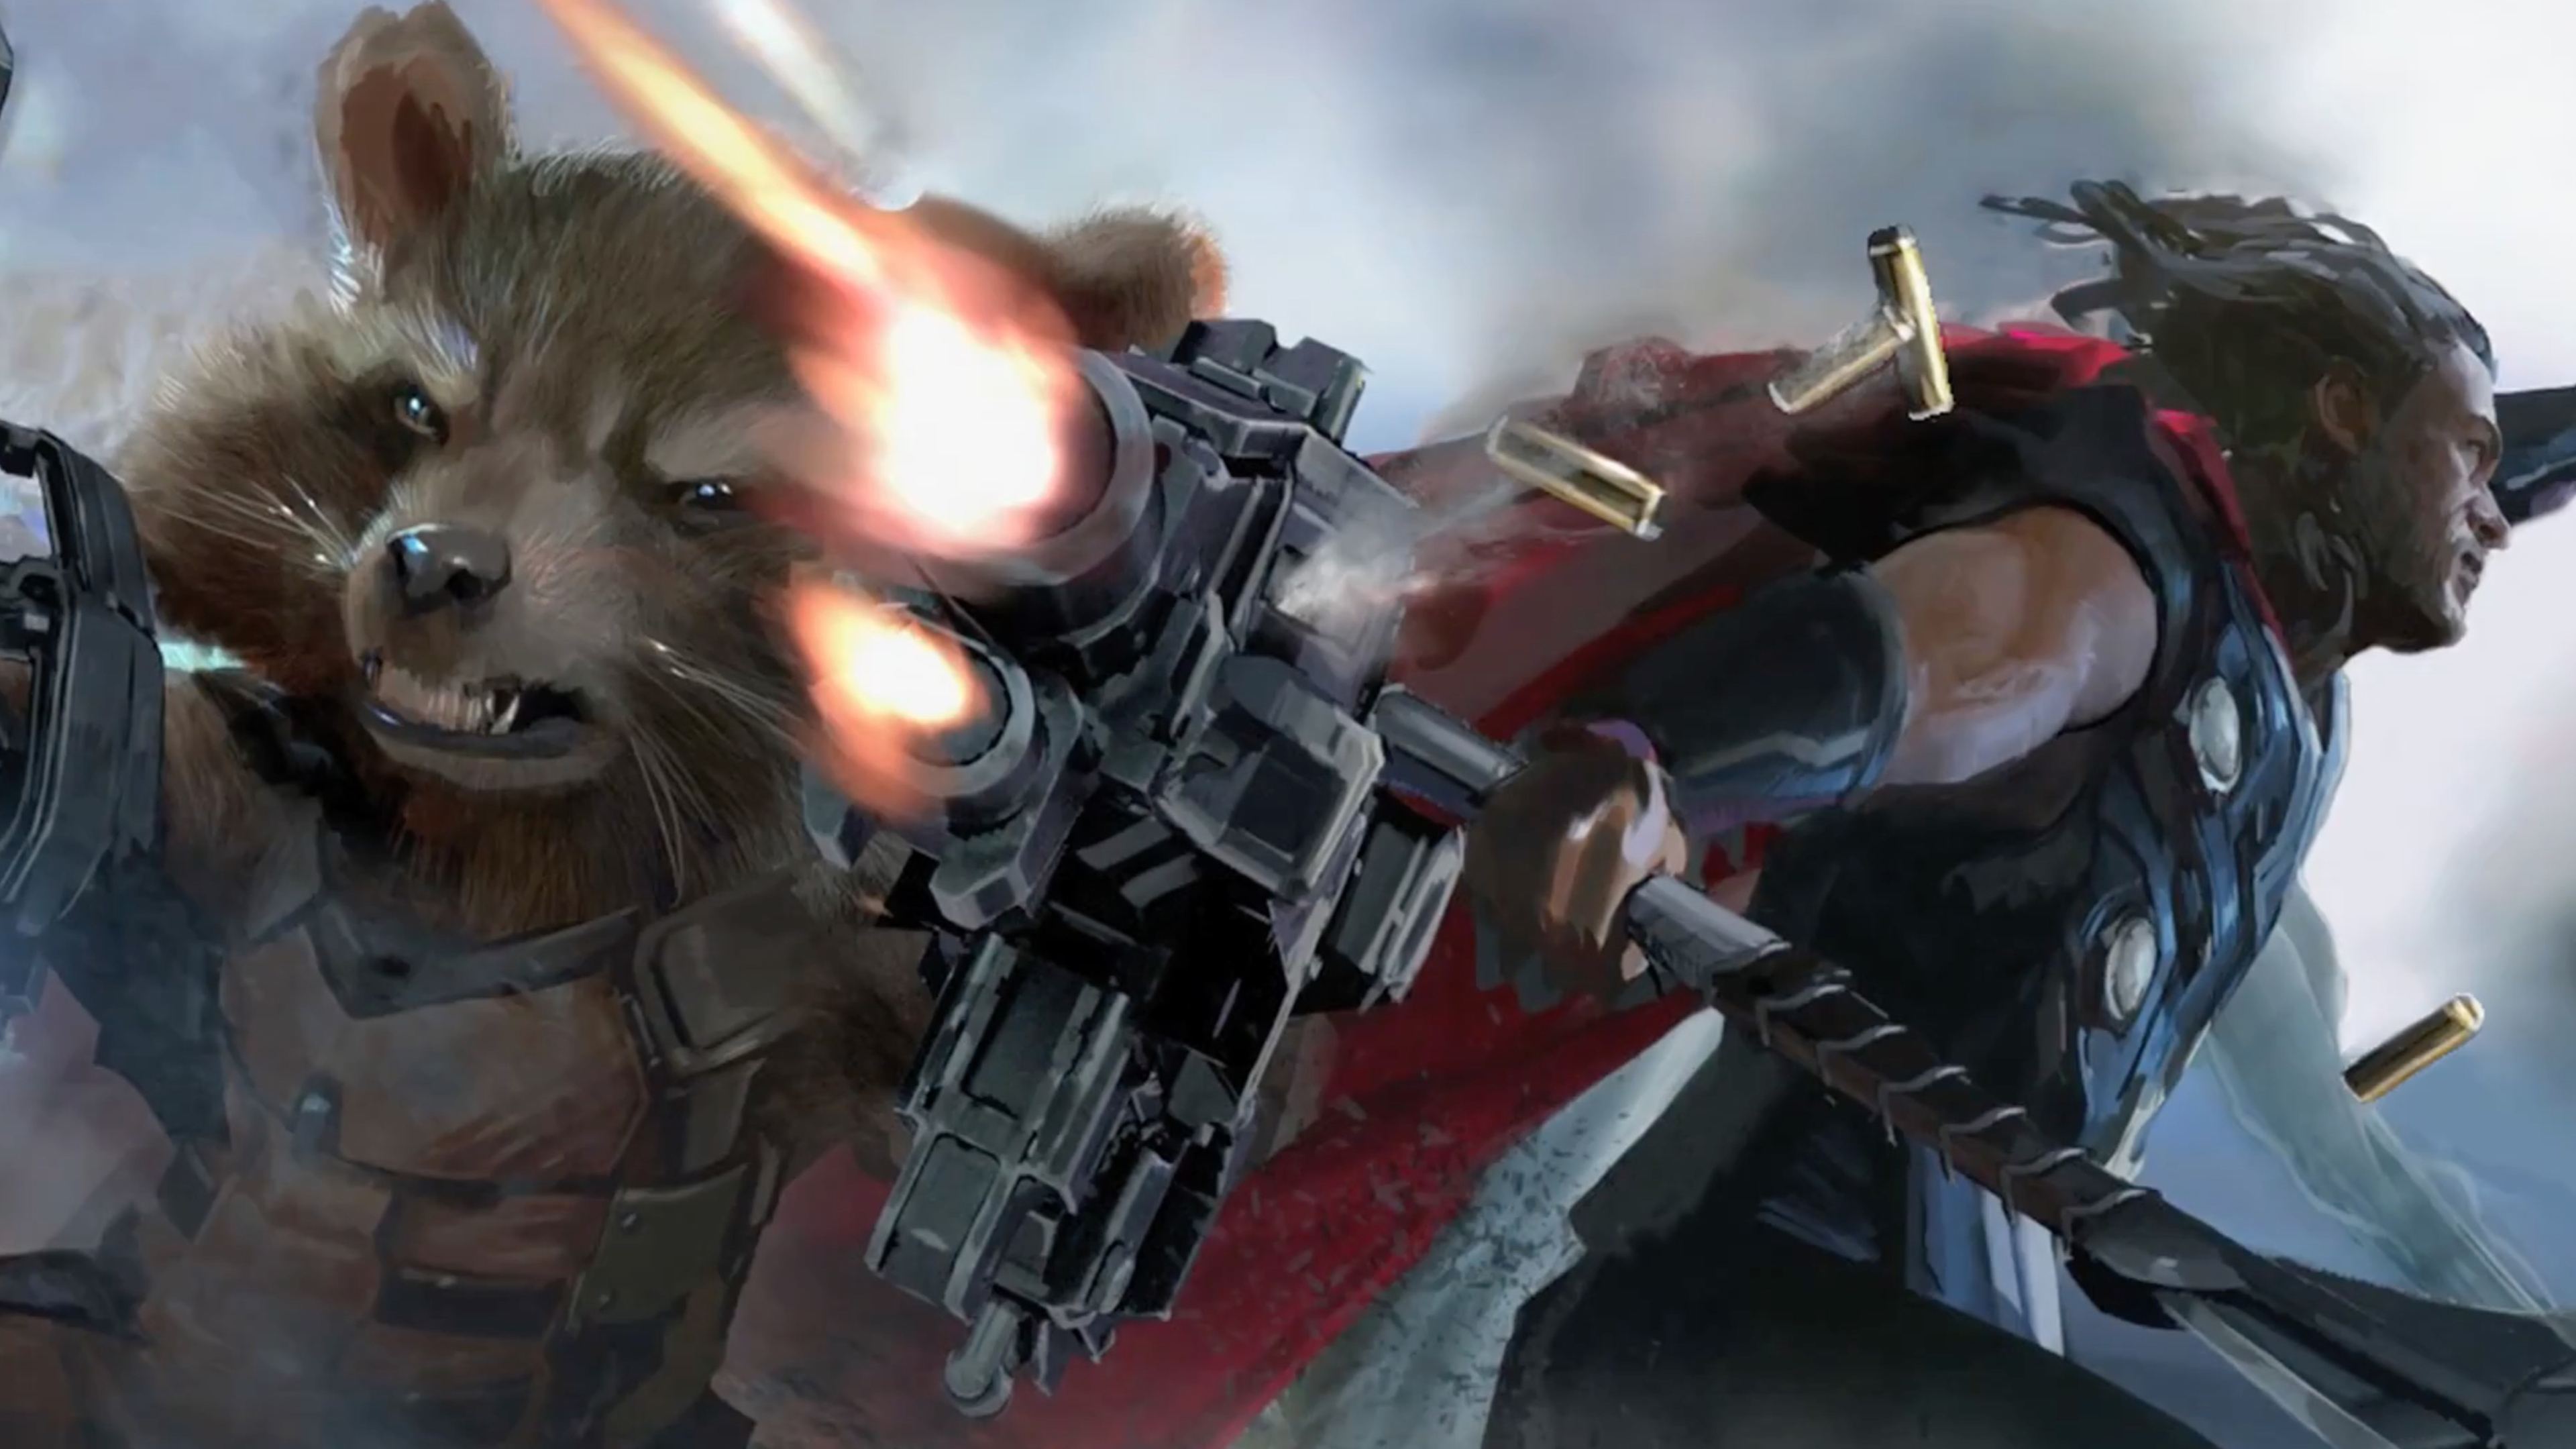 rocket-raccoon-and-thor-in-avengers-infinity-war-